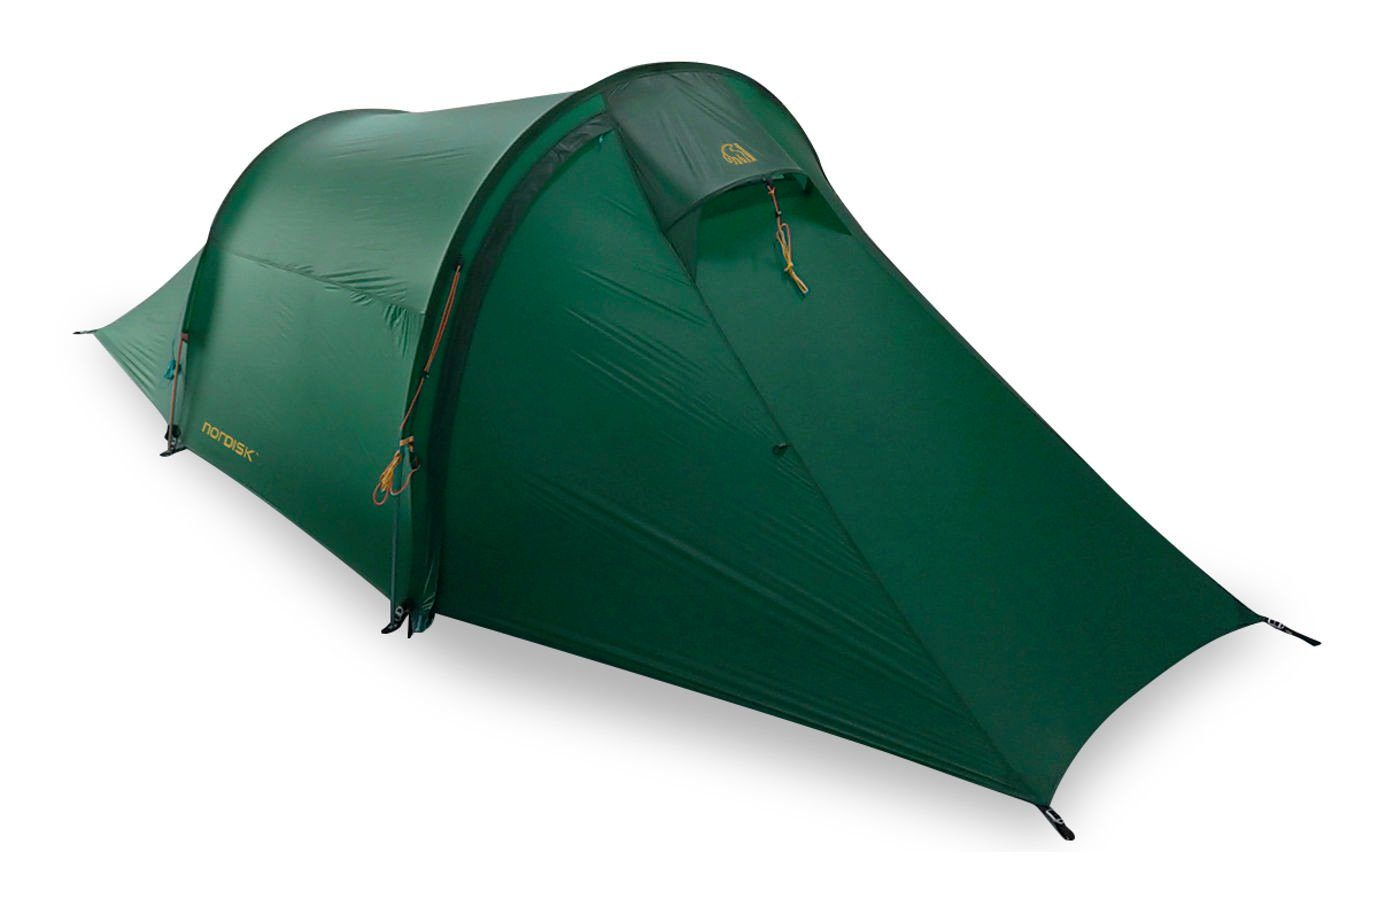 Nordisk Zelt »Halland 2 Light Weight SI Tent«